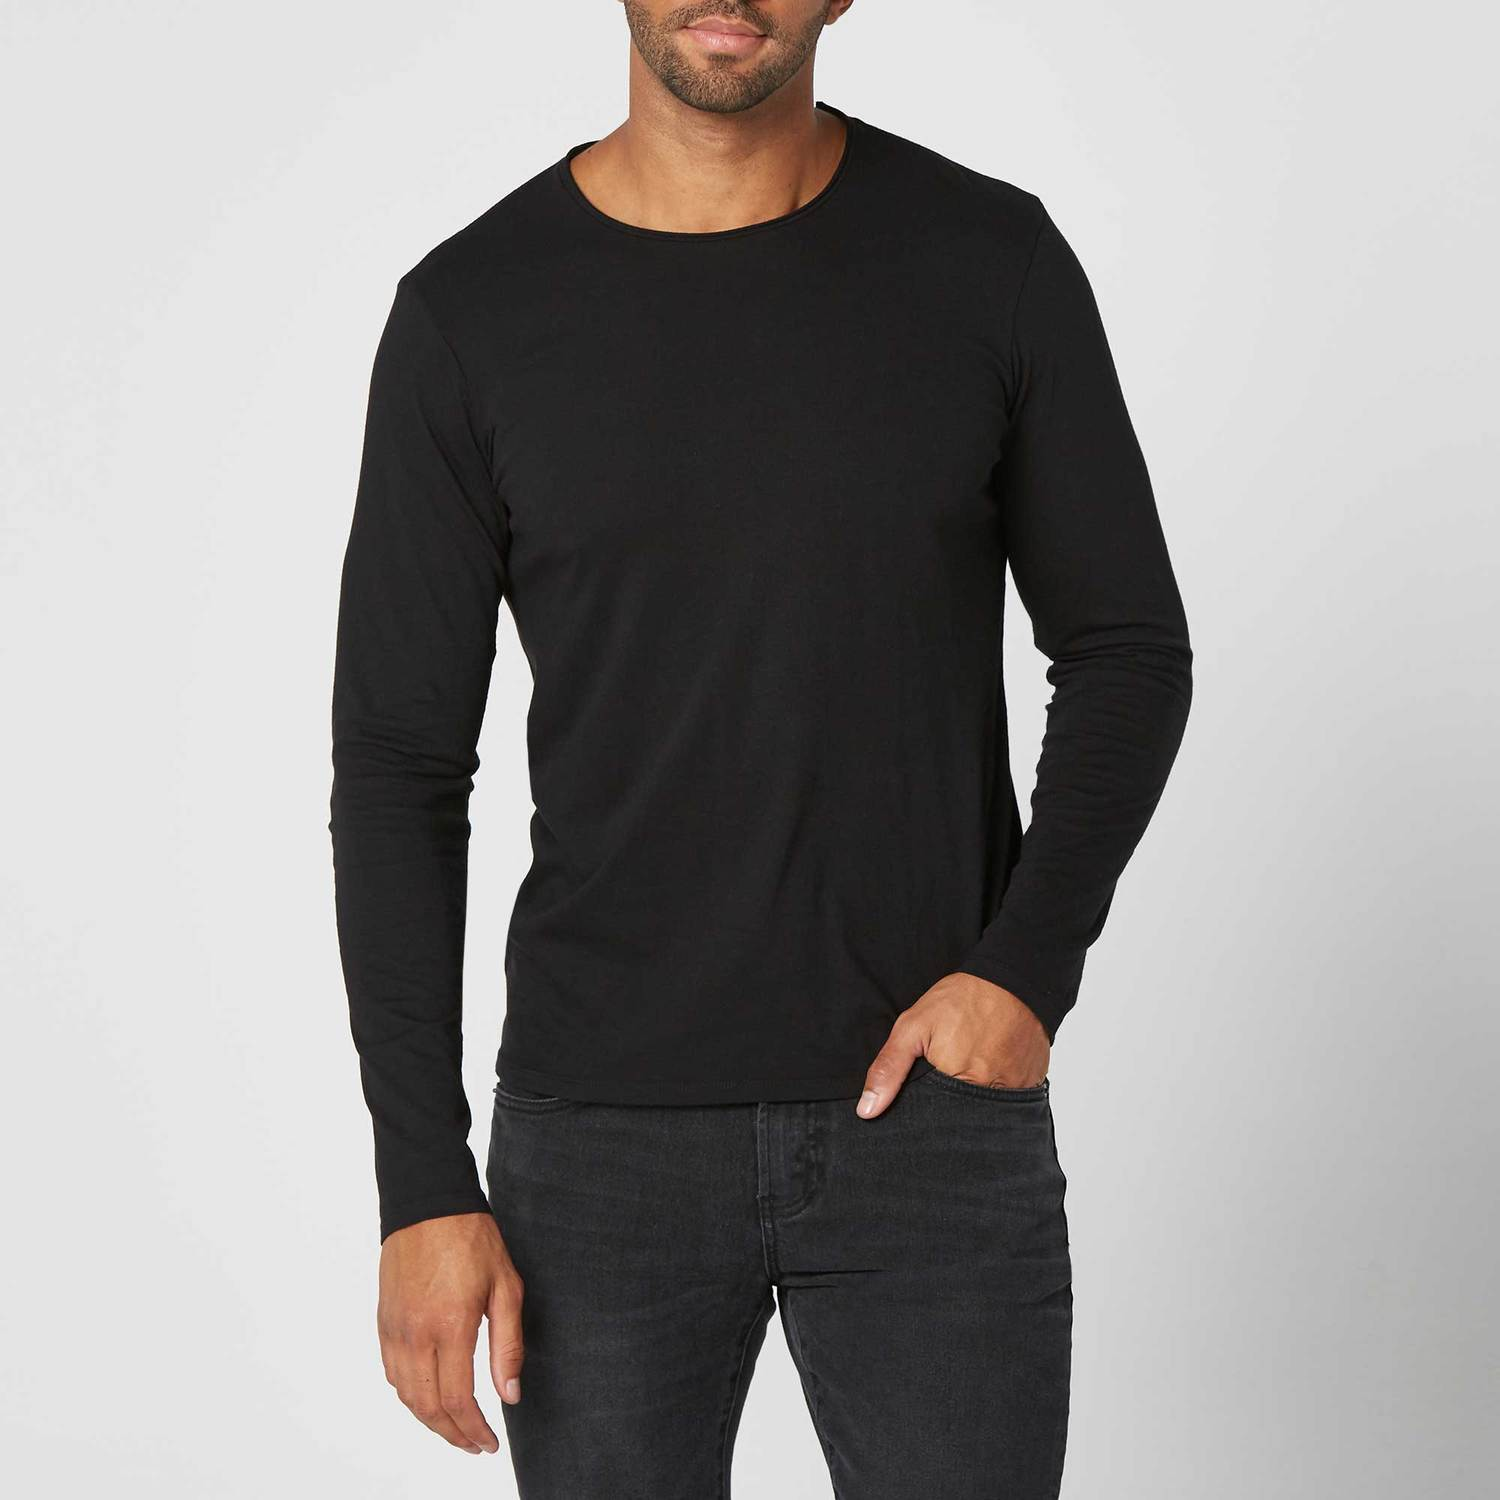 Mens Long Sleeve Modern Crew Neck Tee In Black  30  06466e4b08b